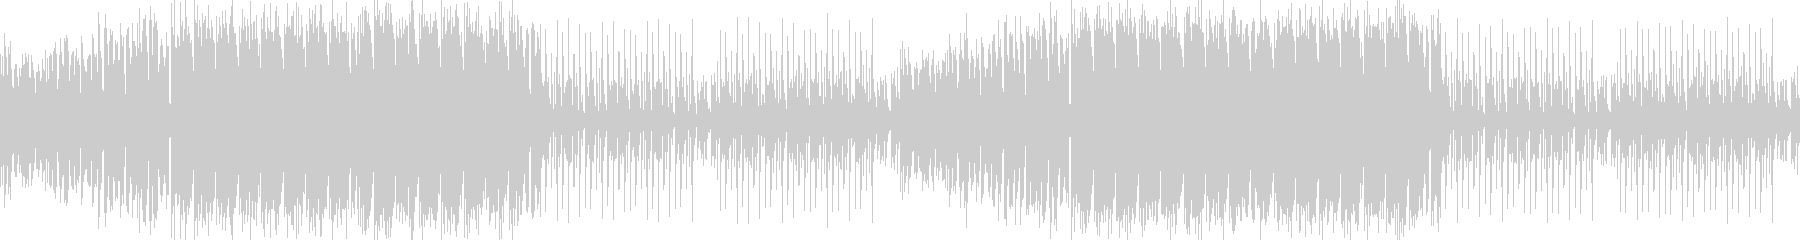 Admission of a refreshing and bright EDM/CM's unreproduced waveform